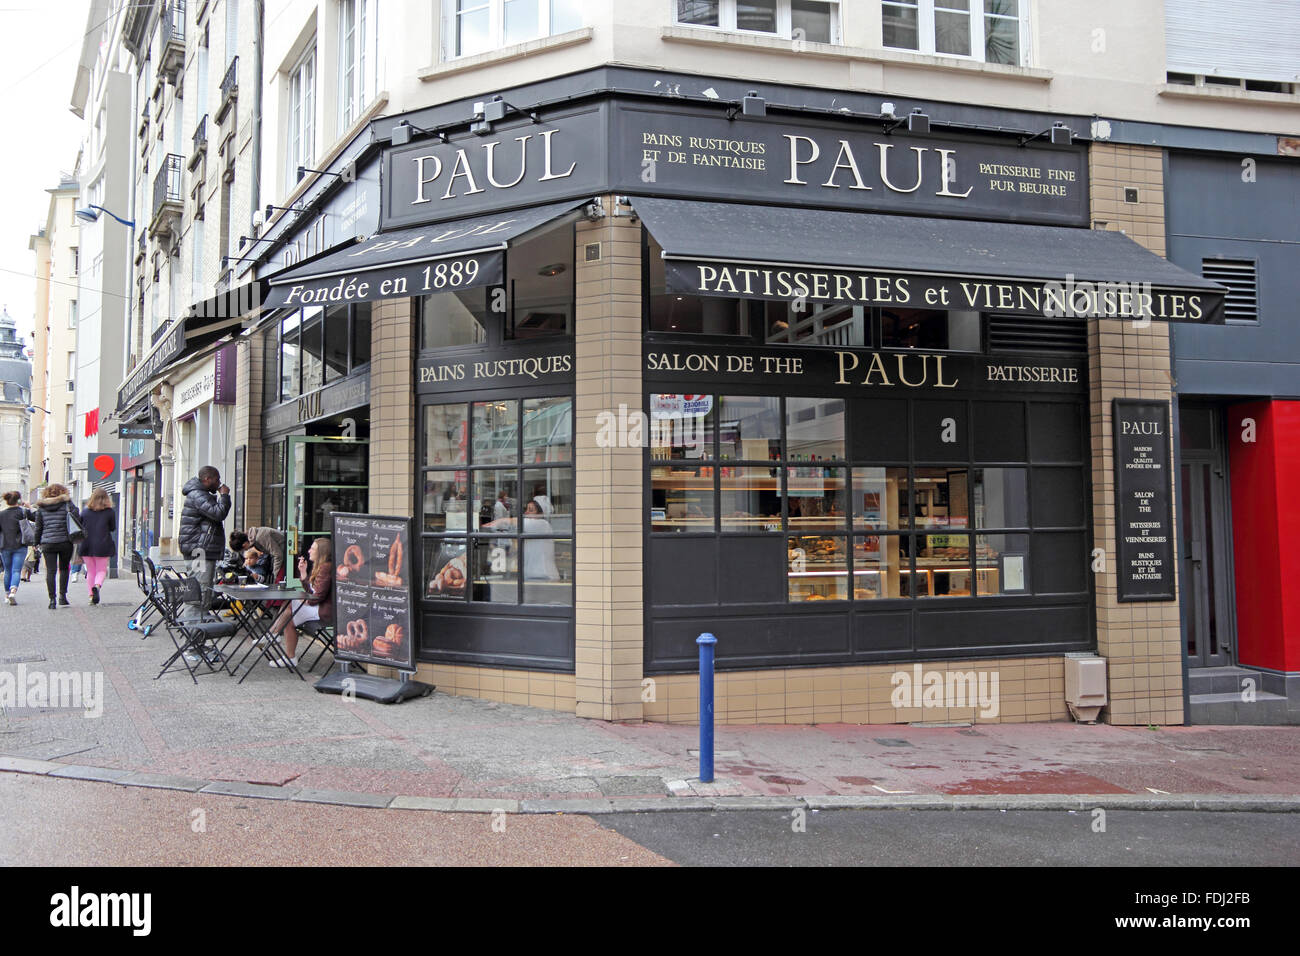 Paul, Salon de The and bakery shop, founded in 1889, Limoges, France - Stock Image